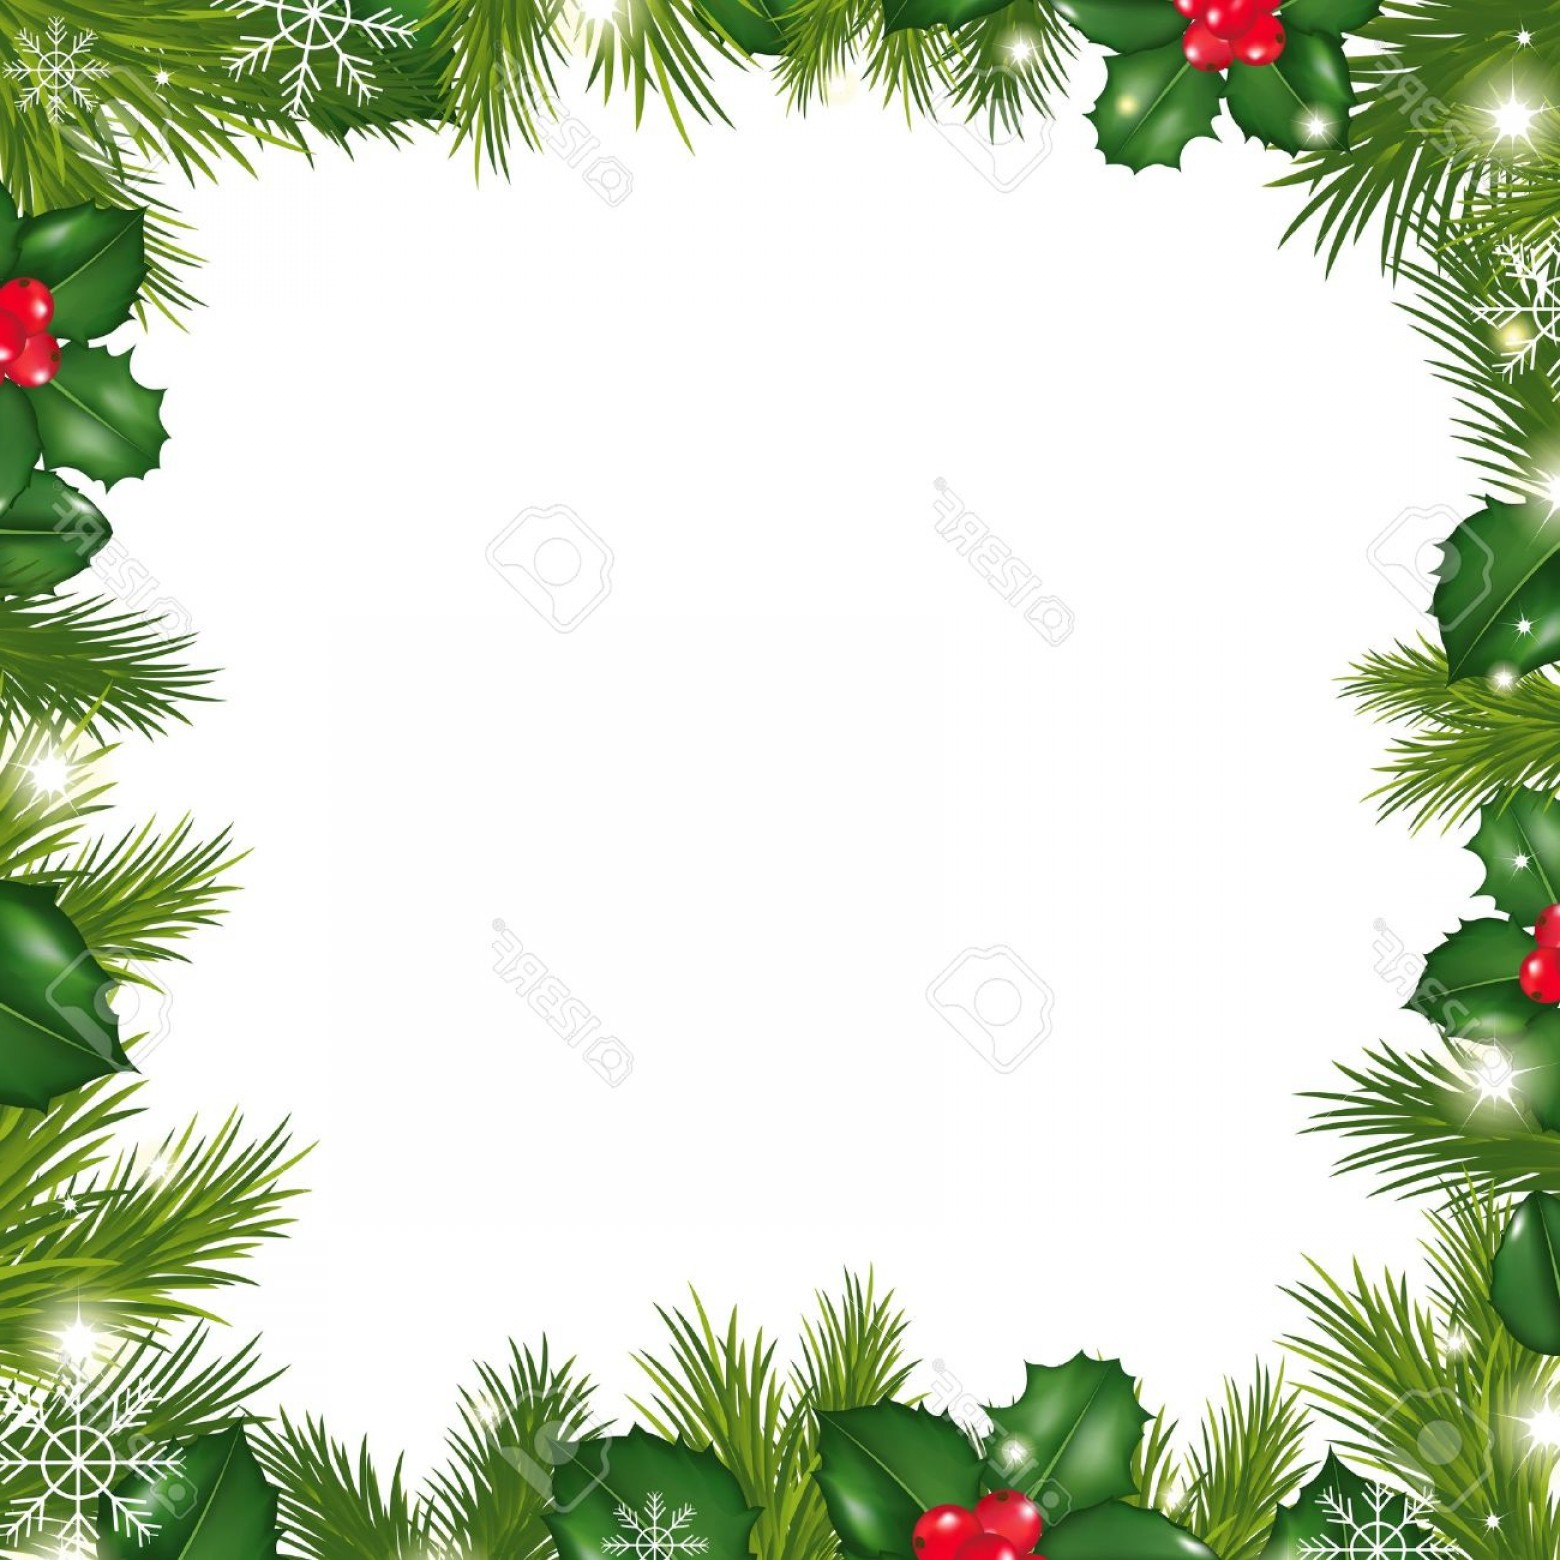 Holly Berry Vector Border: Photoborders With Snowflakes And Holly Berry Illustration